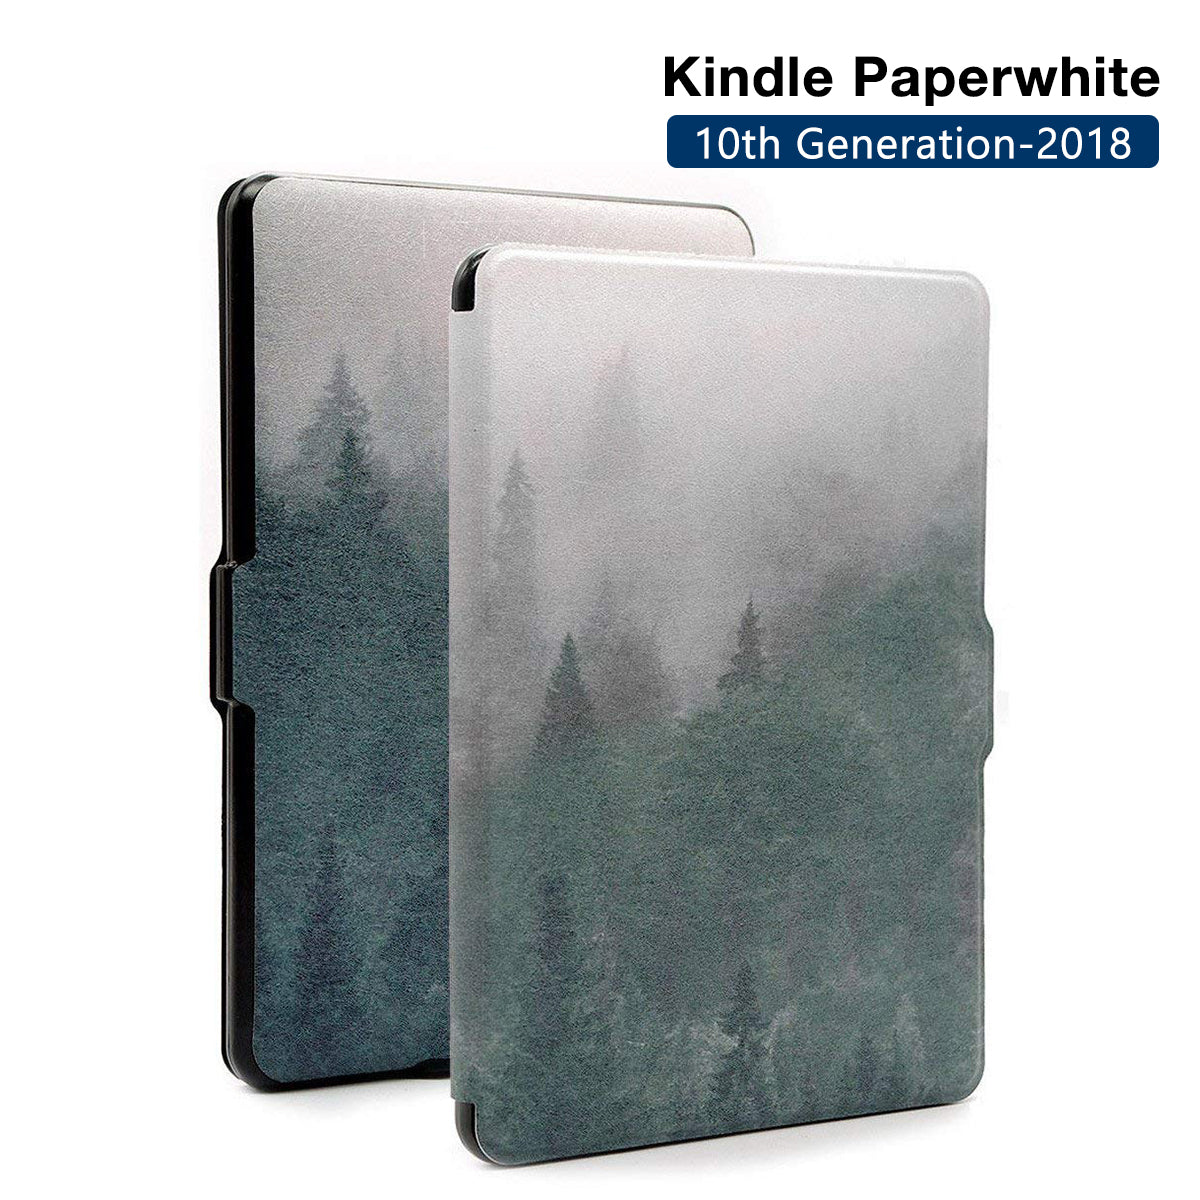 Premium Quality Colorful Painting Leather Cover for Amazon Kindle Paperwhite 10th Generation-2018  - Mist Forest